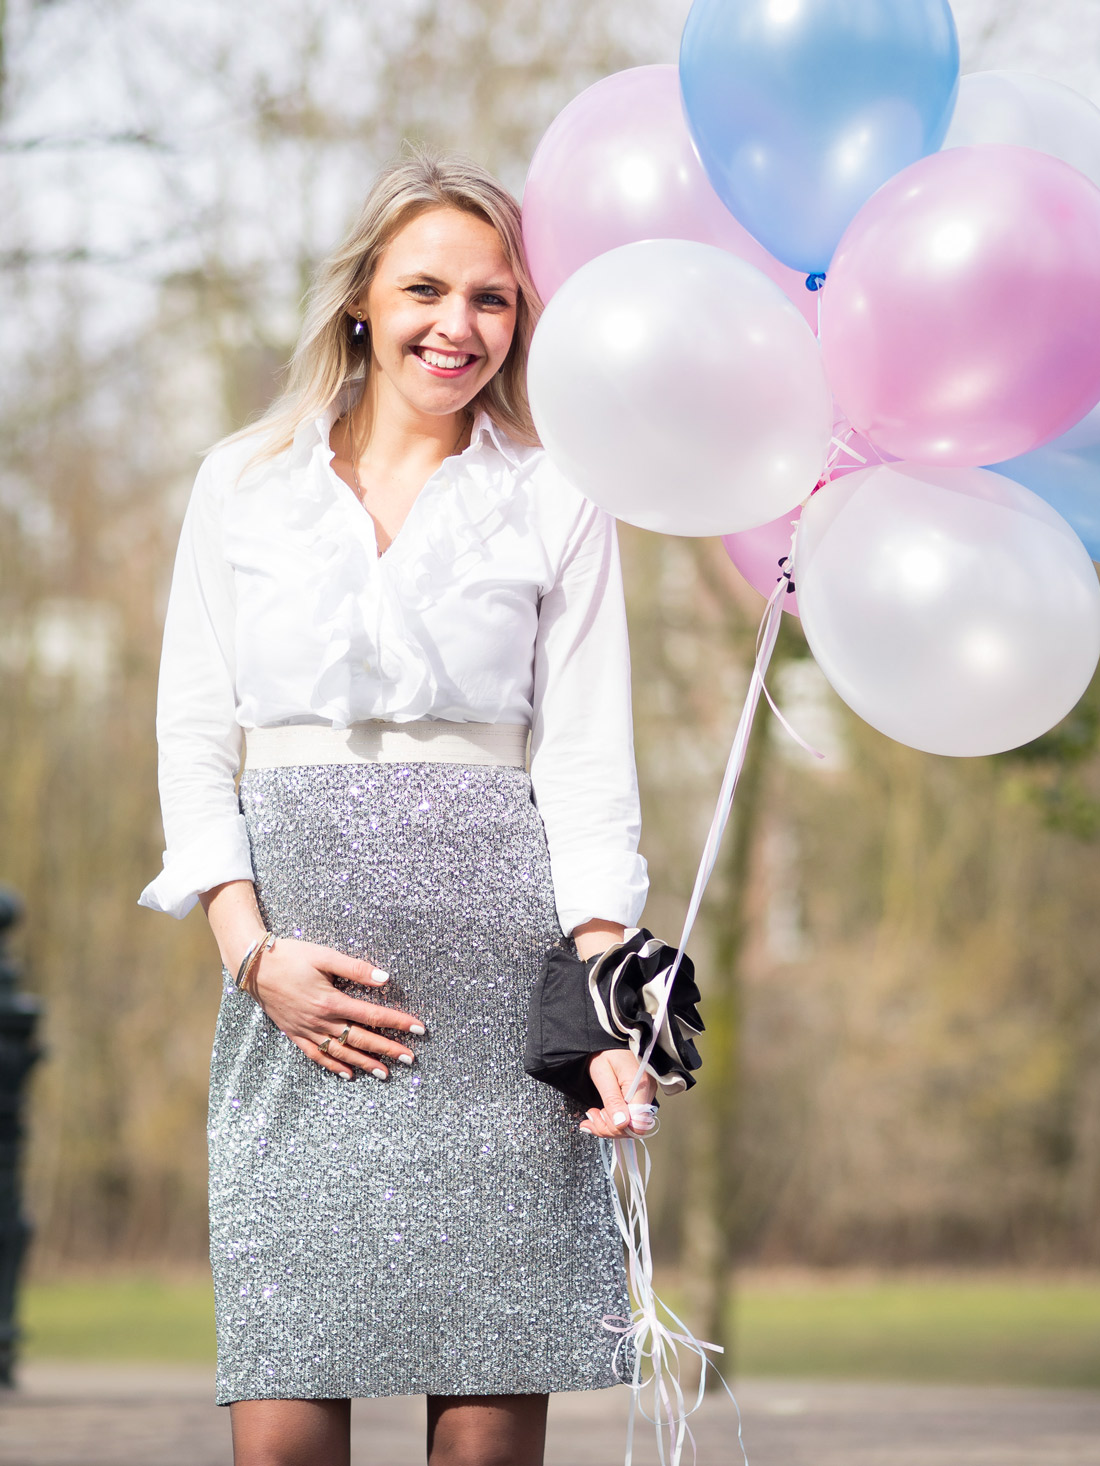 Bag-at-you---Blogger---Pregnant-style---Marinke-Davelaar-Fotografie